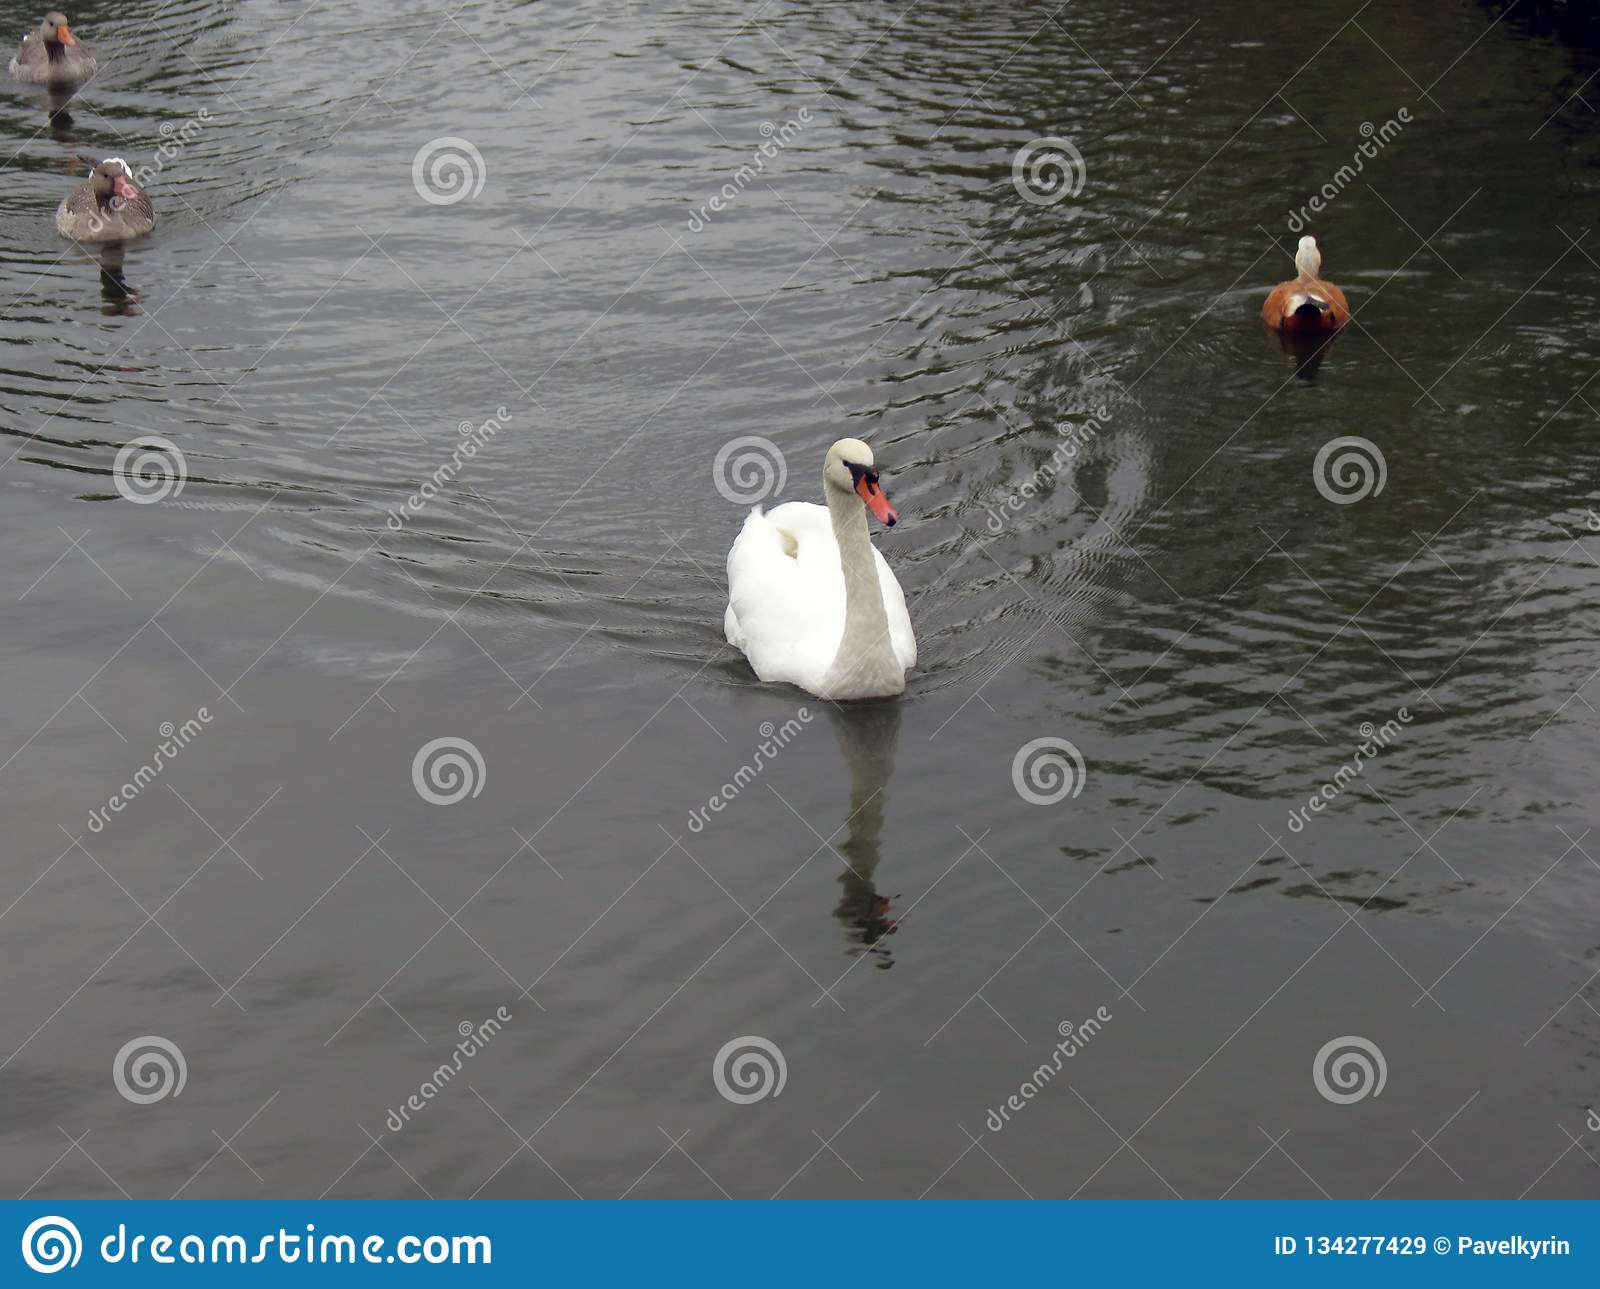 Central Russia, the white Swan and three ducks floating on the pond